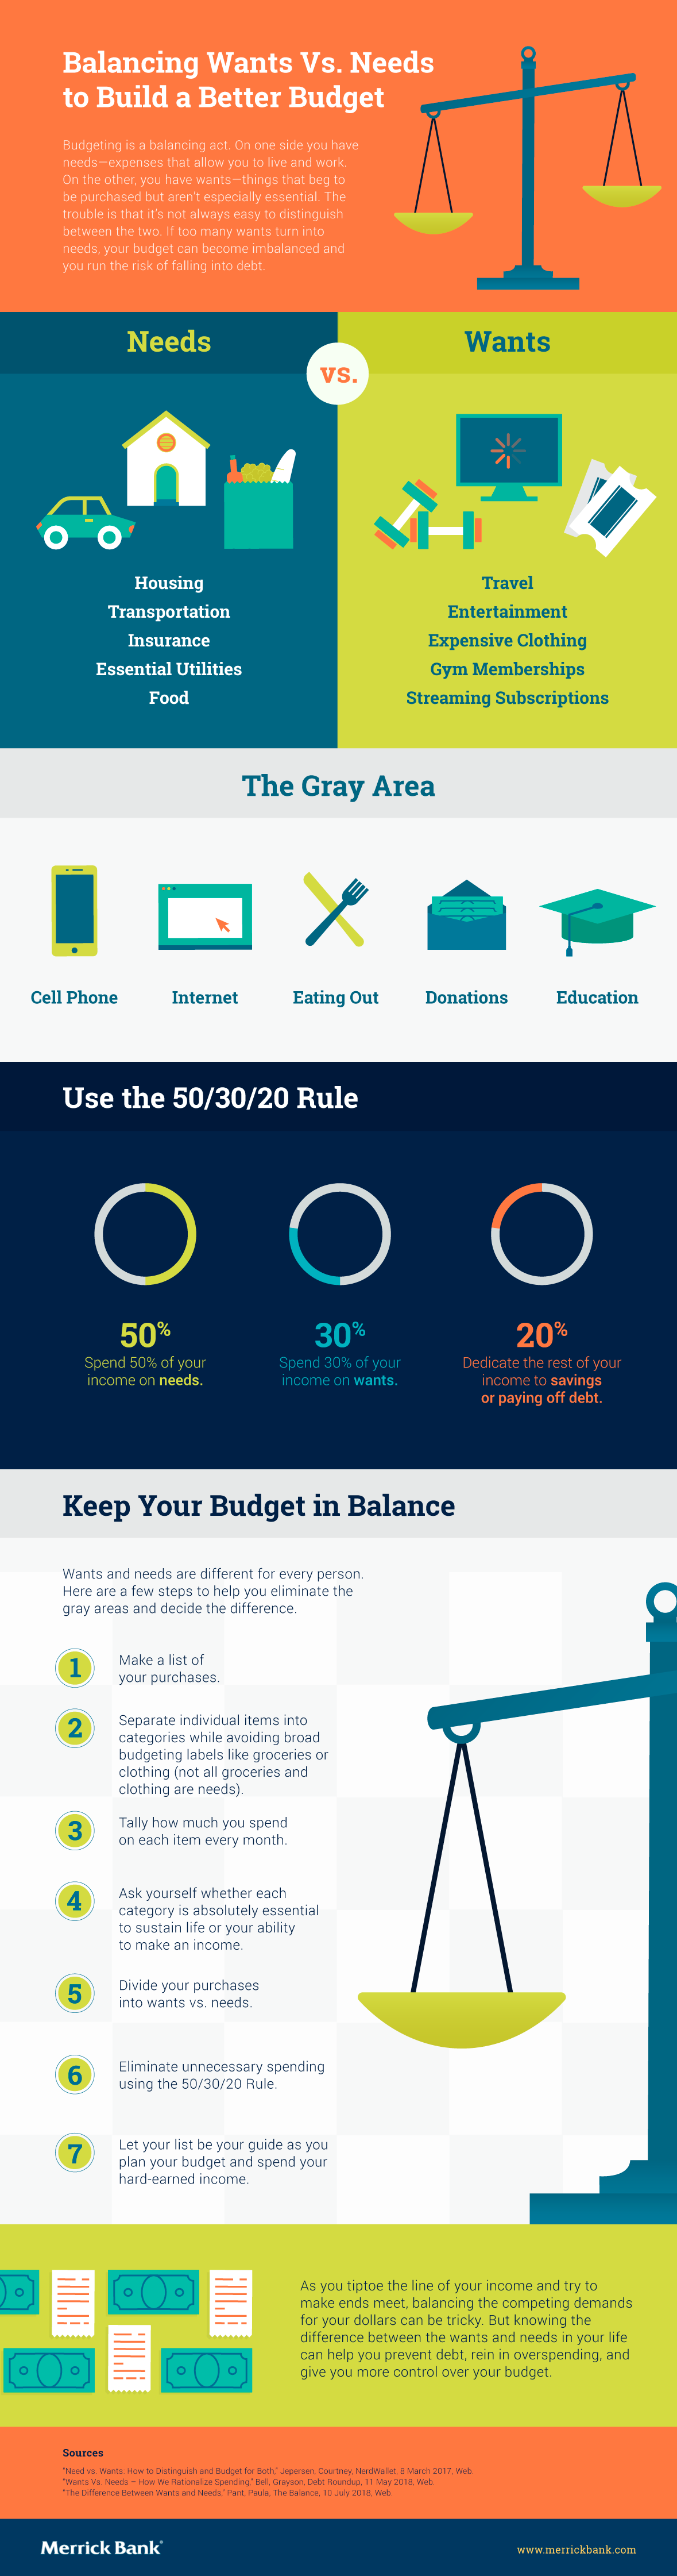 Balance your wants and needs to create a stable budget